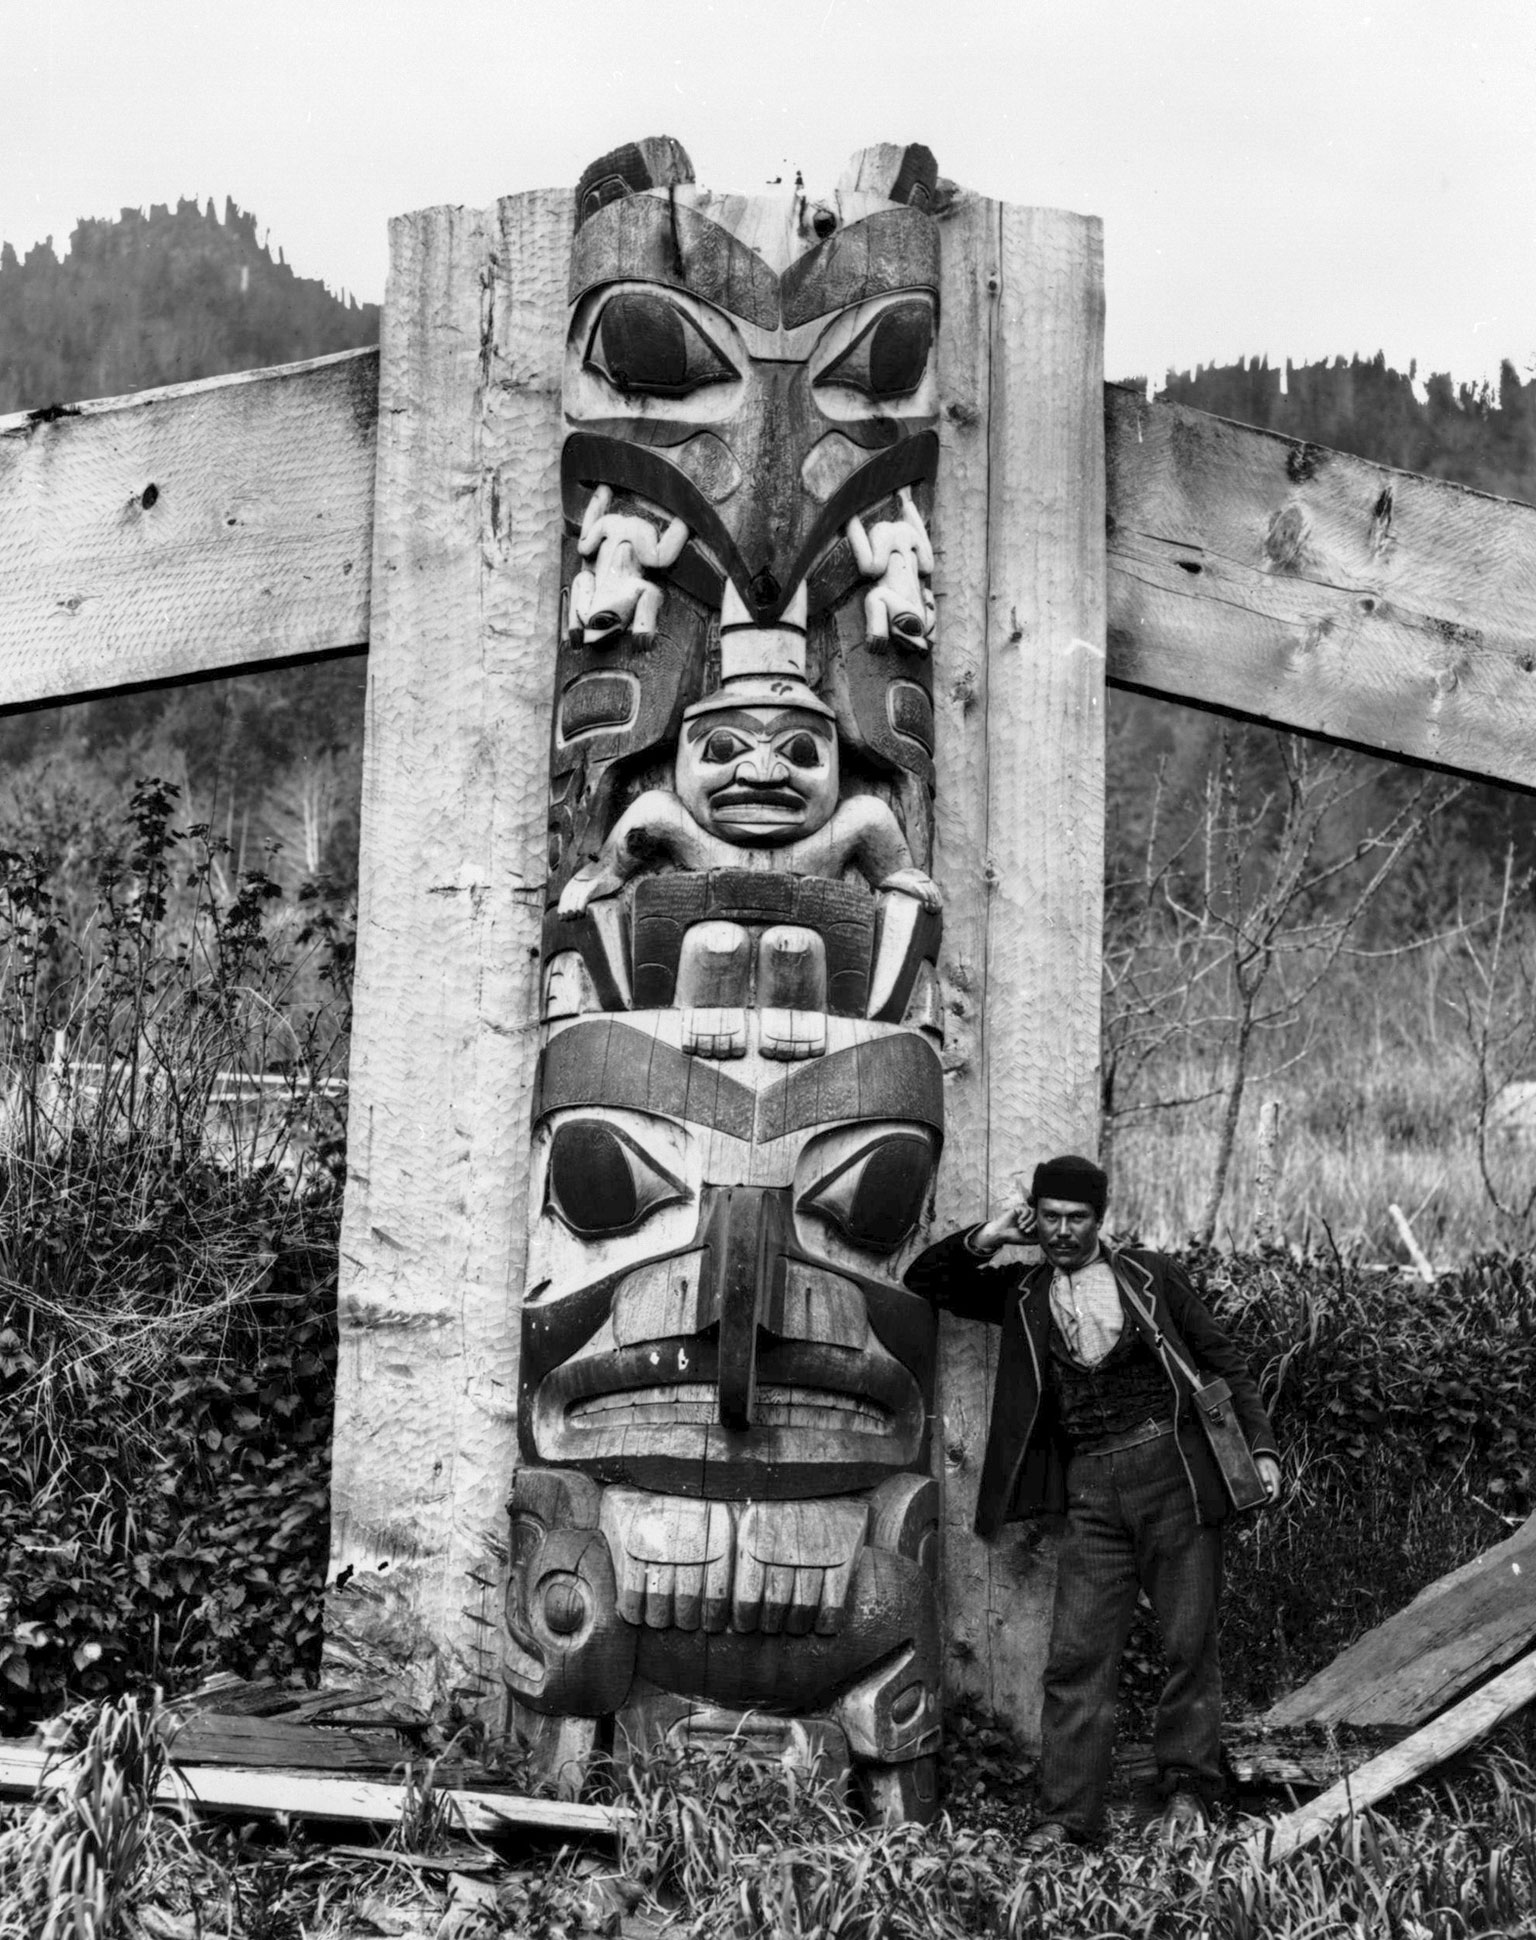 Image courtesy of the Royal BC Museum and Archives